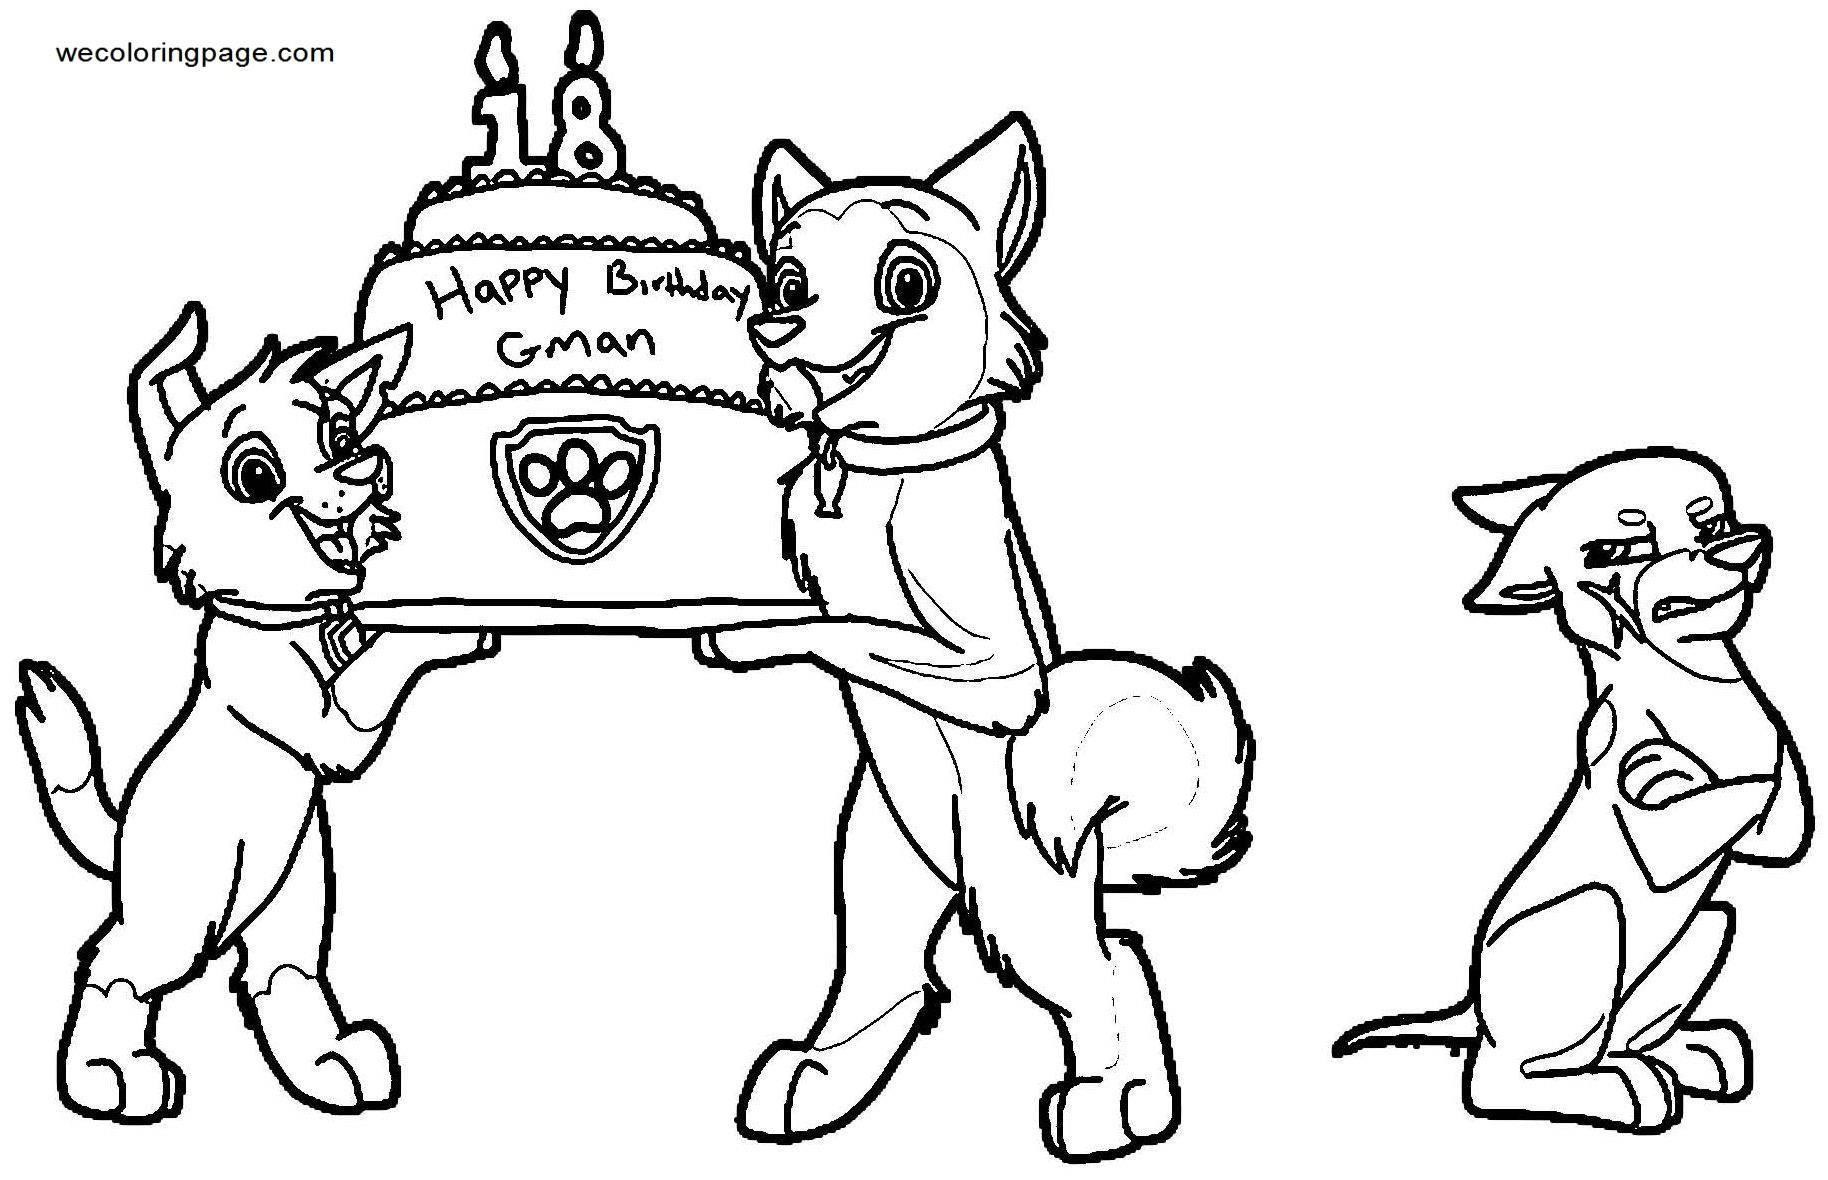 Happy Bday G Pokemon luver girl Dtvr Coloring Page